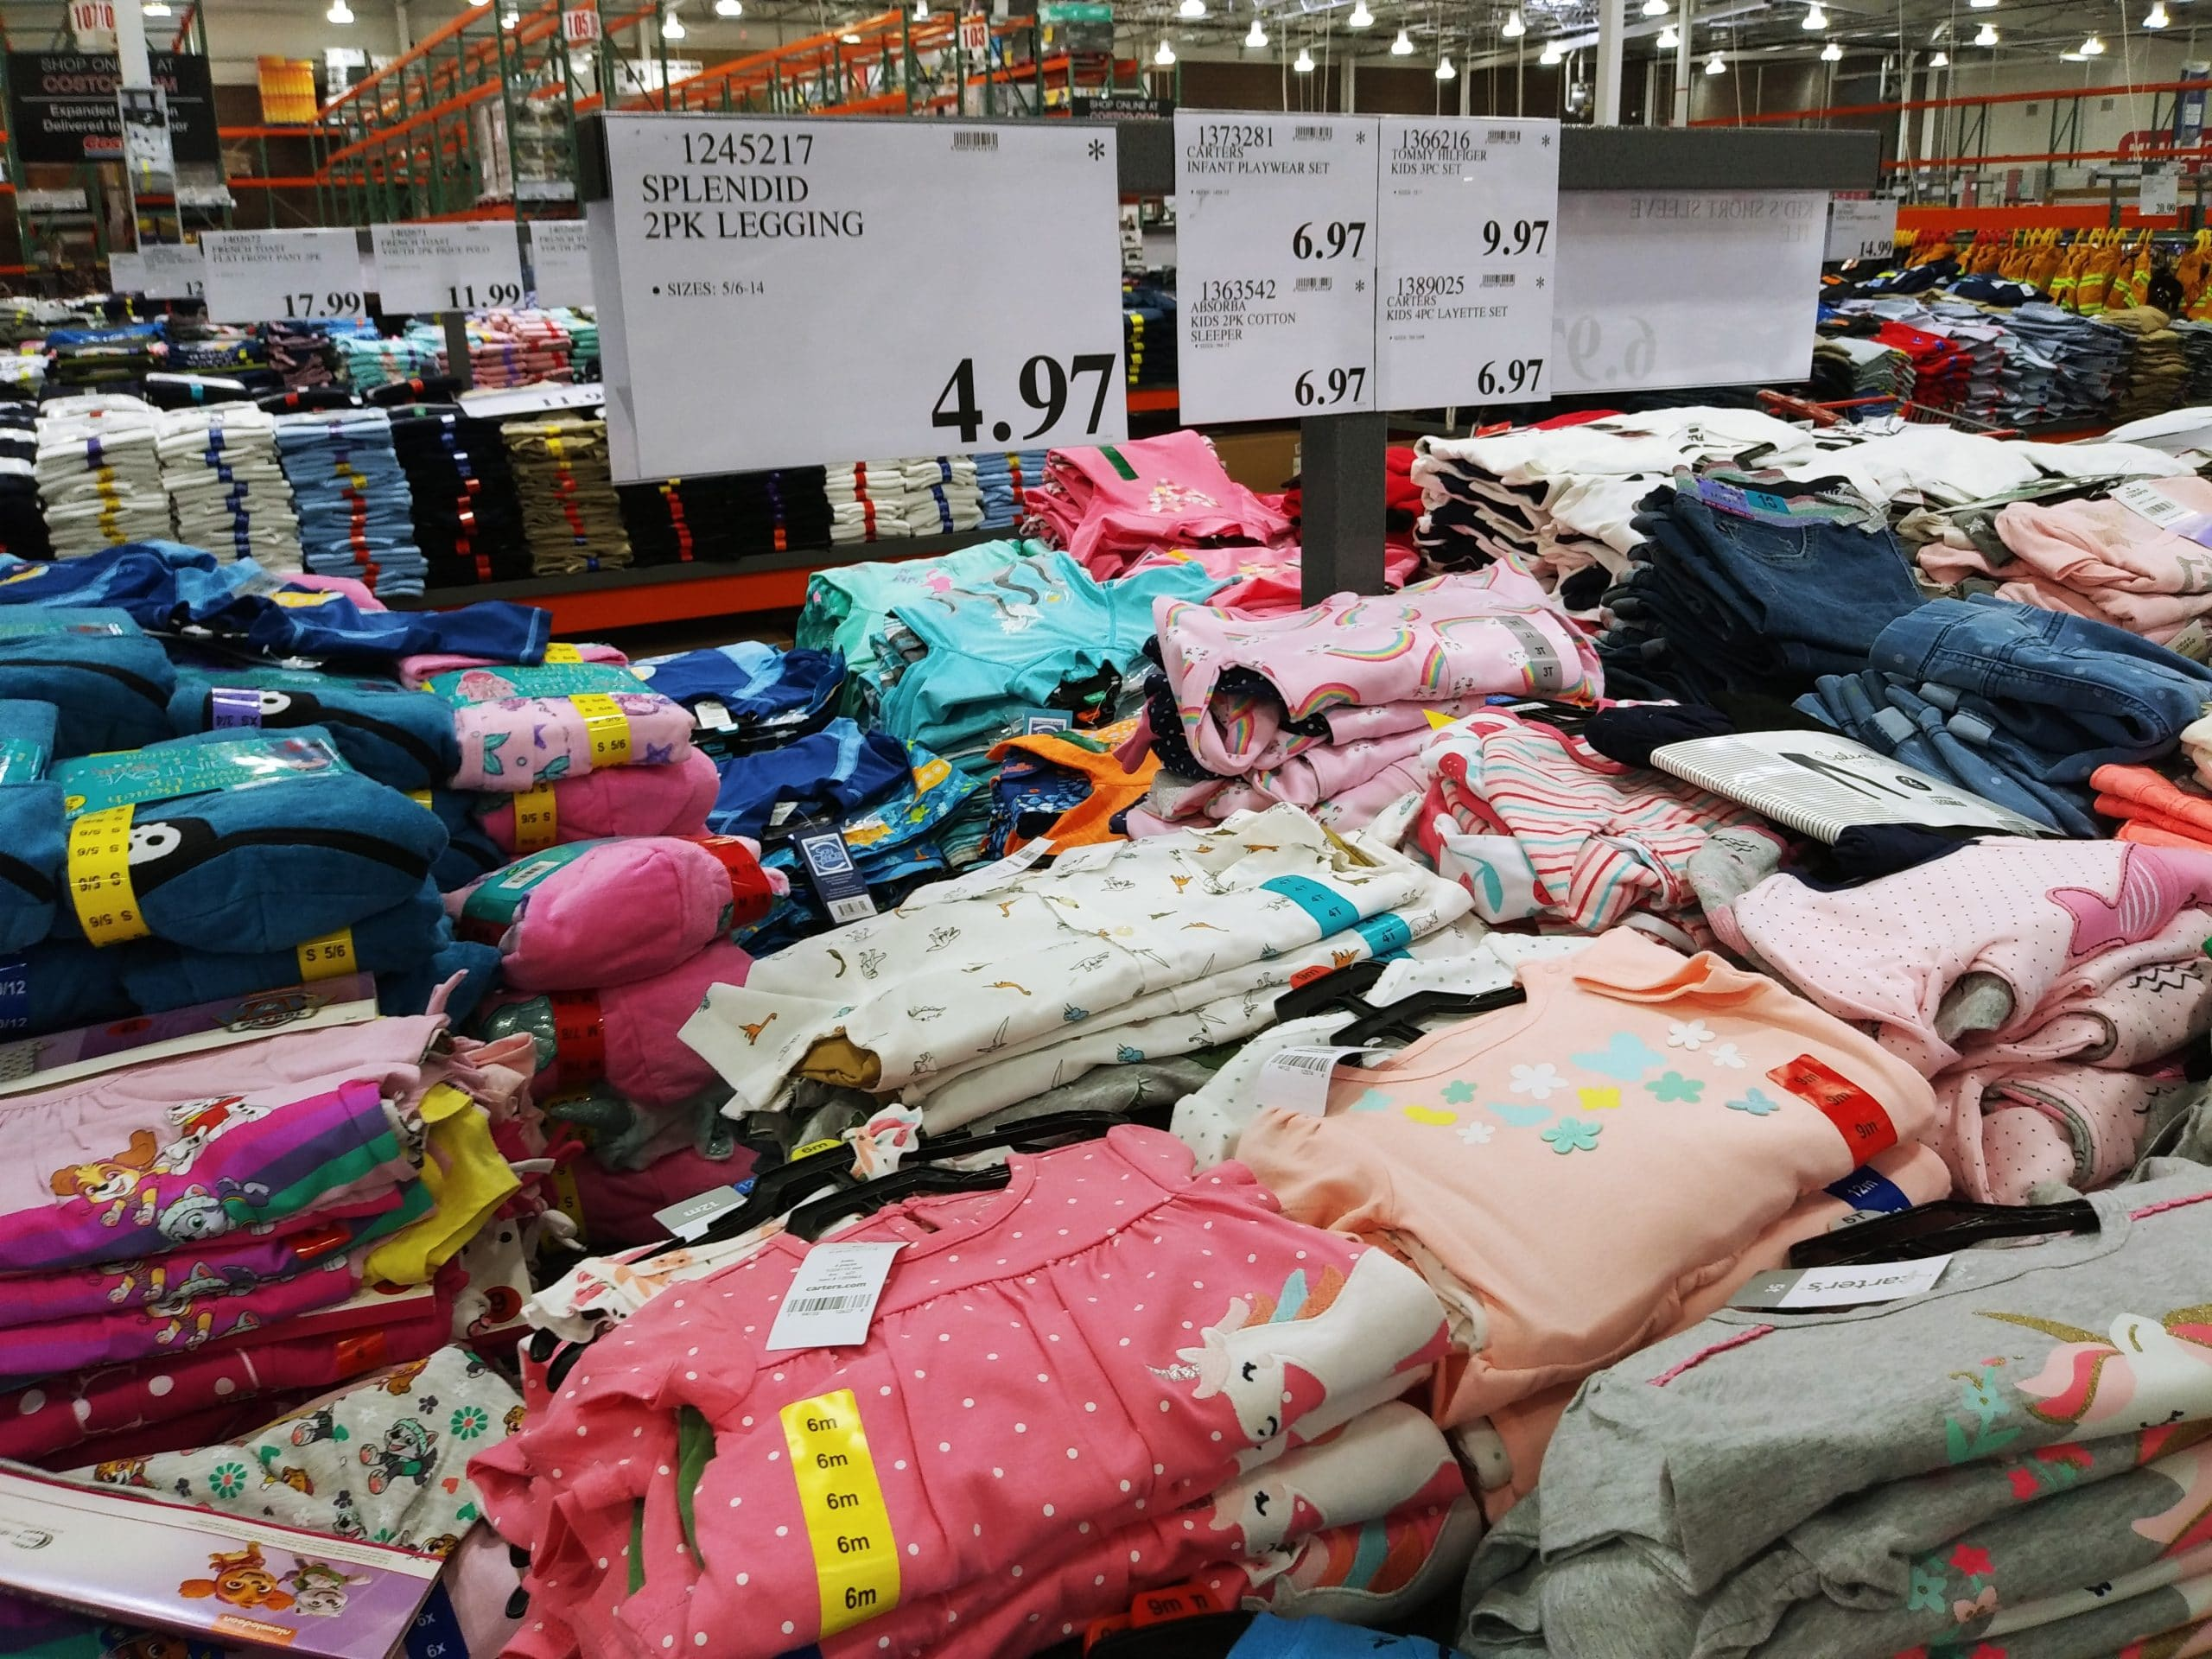 Girls Youth Clothing Under $10 at Costco